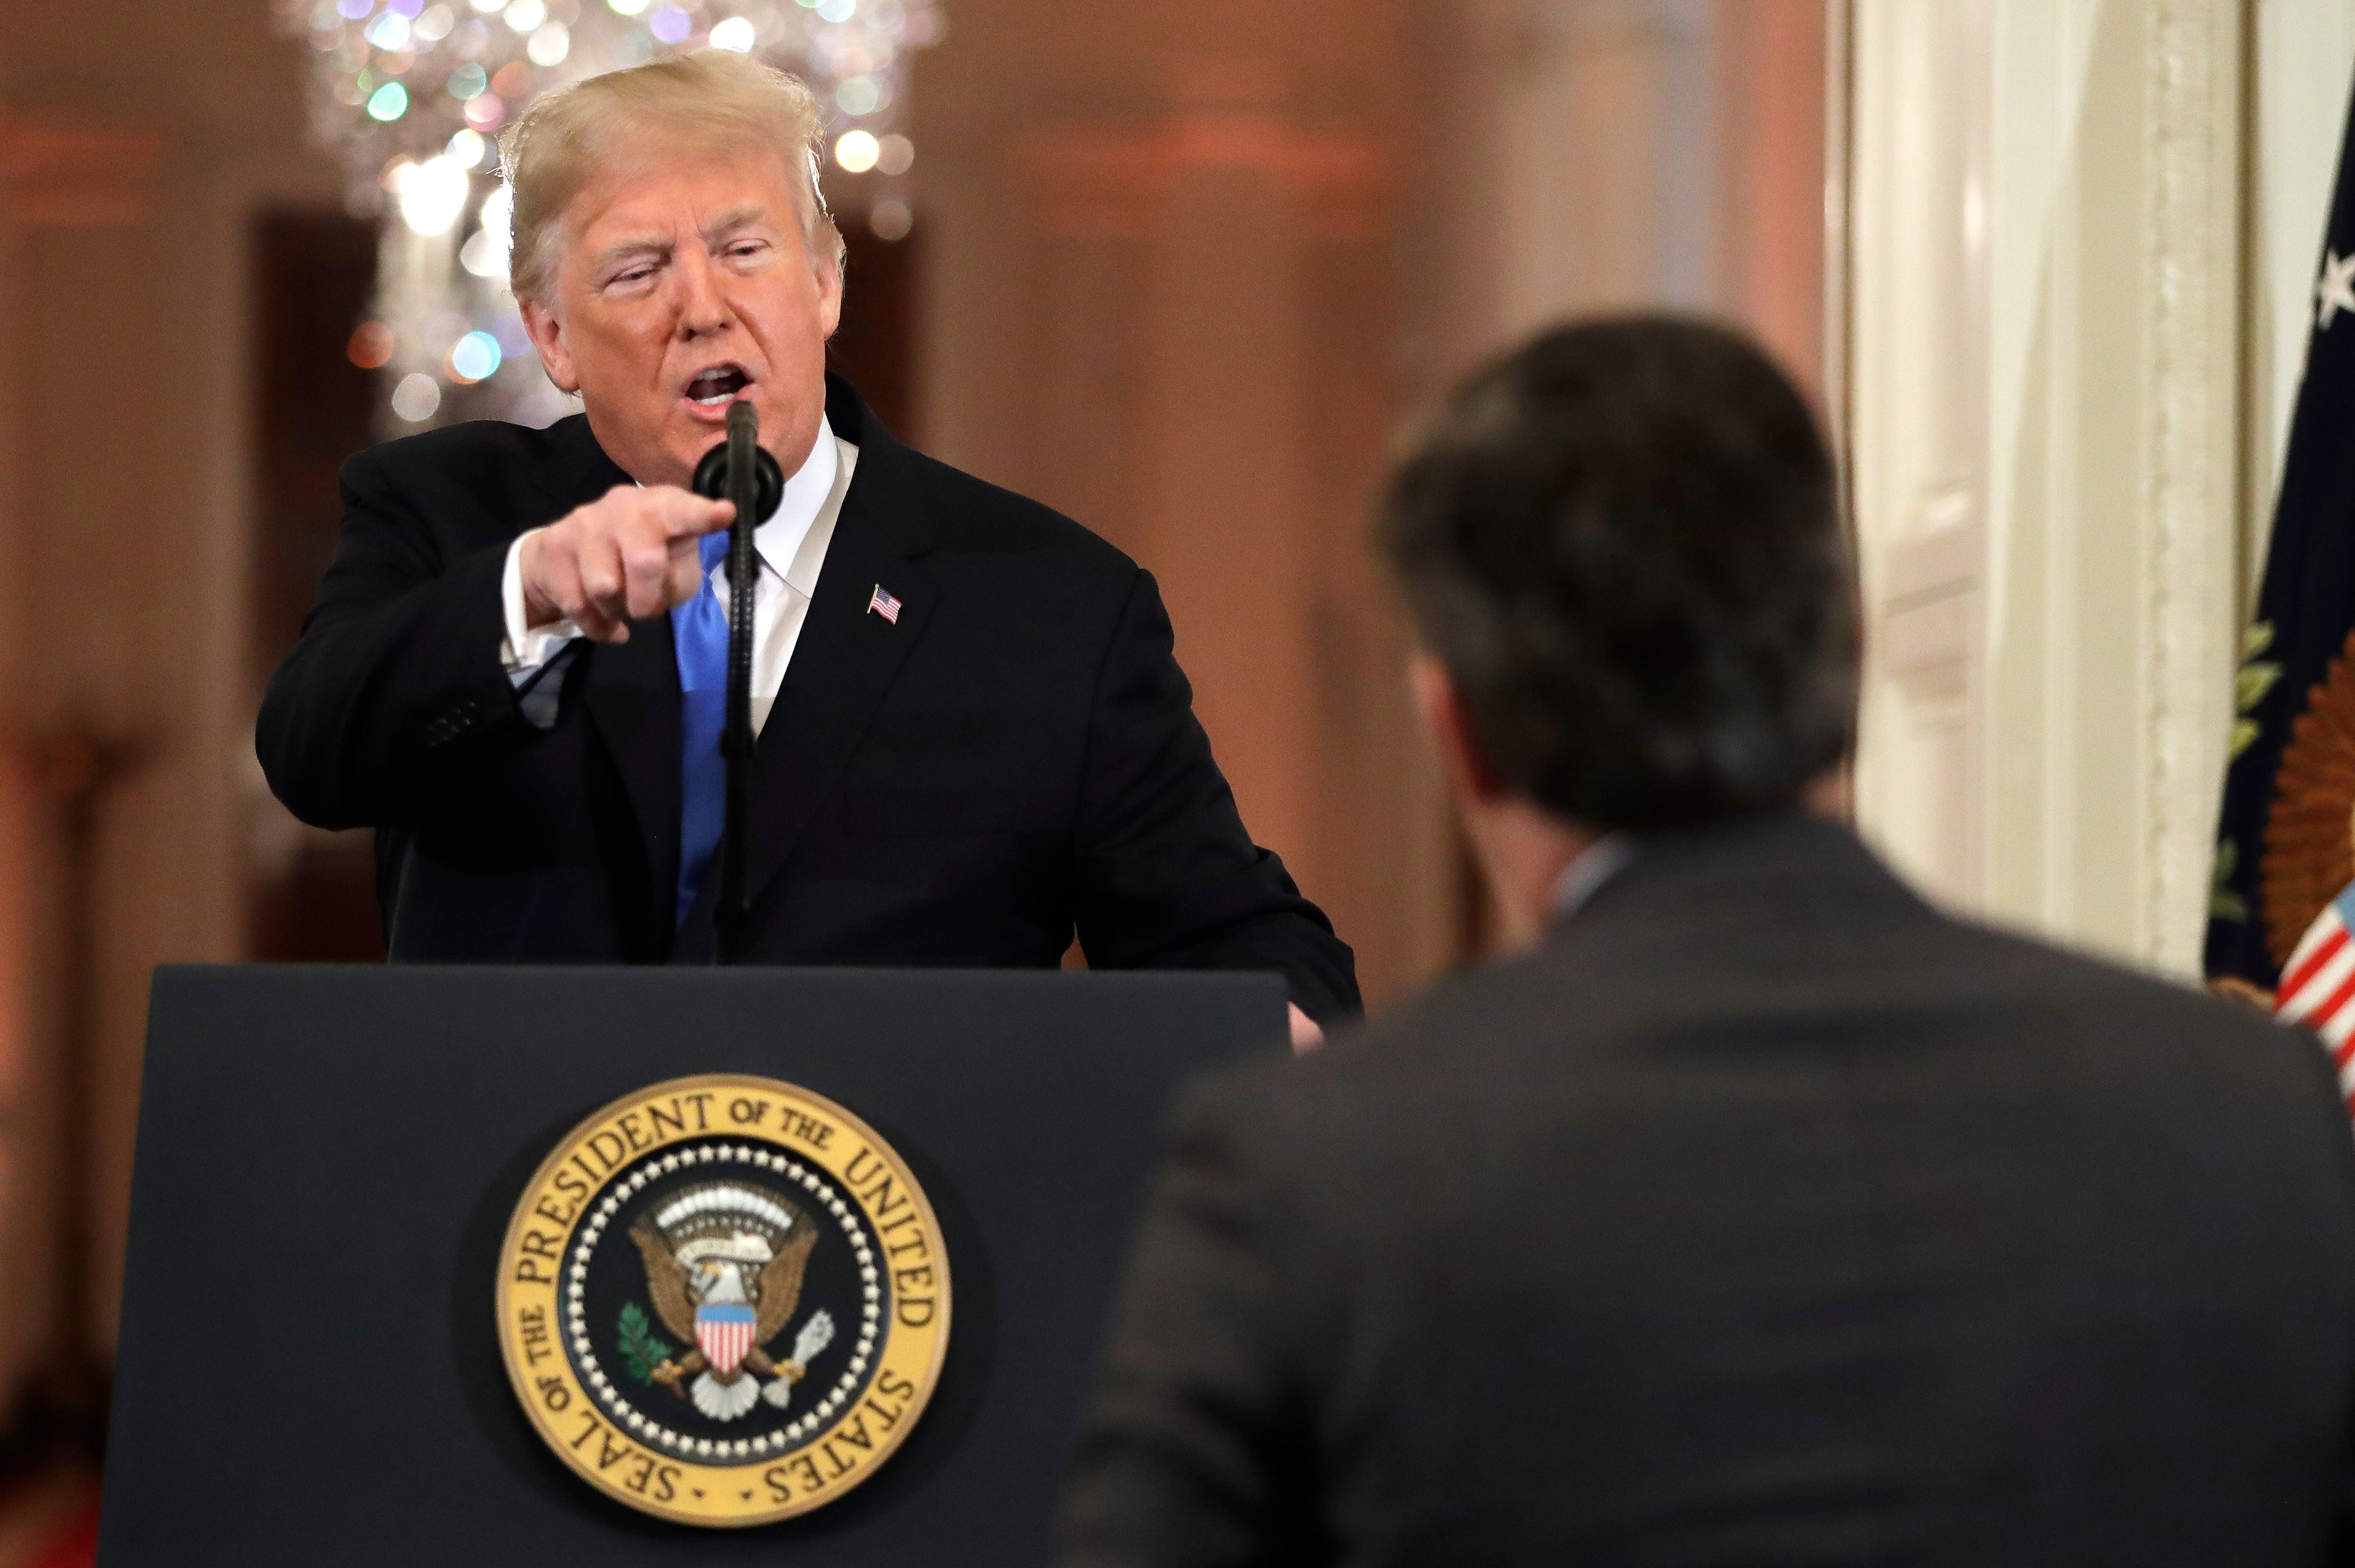 Some of the notable moments CNN's Jim Acosta and the White House have clashed